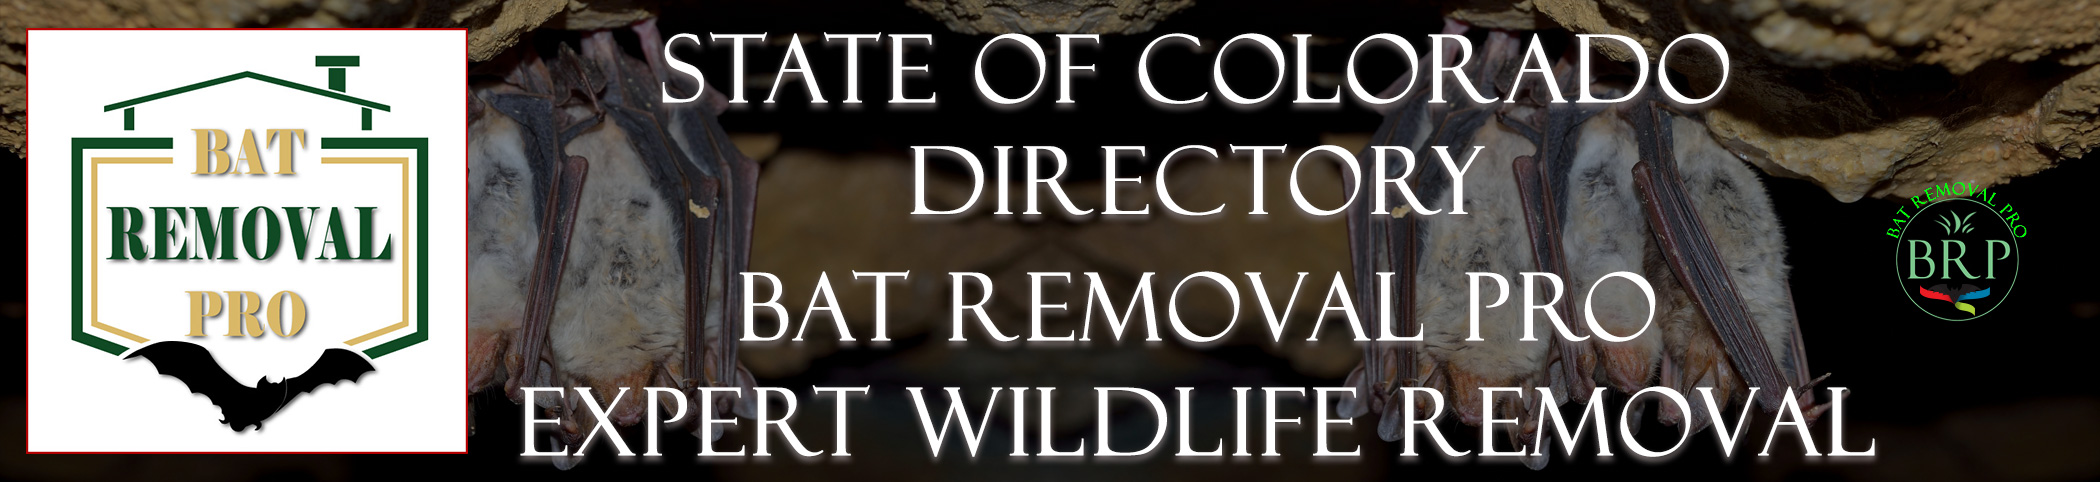 Colorado Header Image At Bat Removal Pro National Directory of Control, Trapping and Removal Professionals